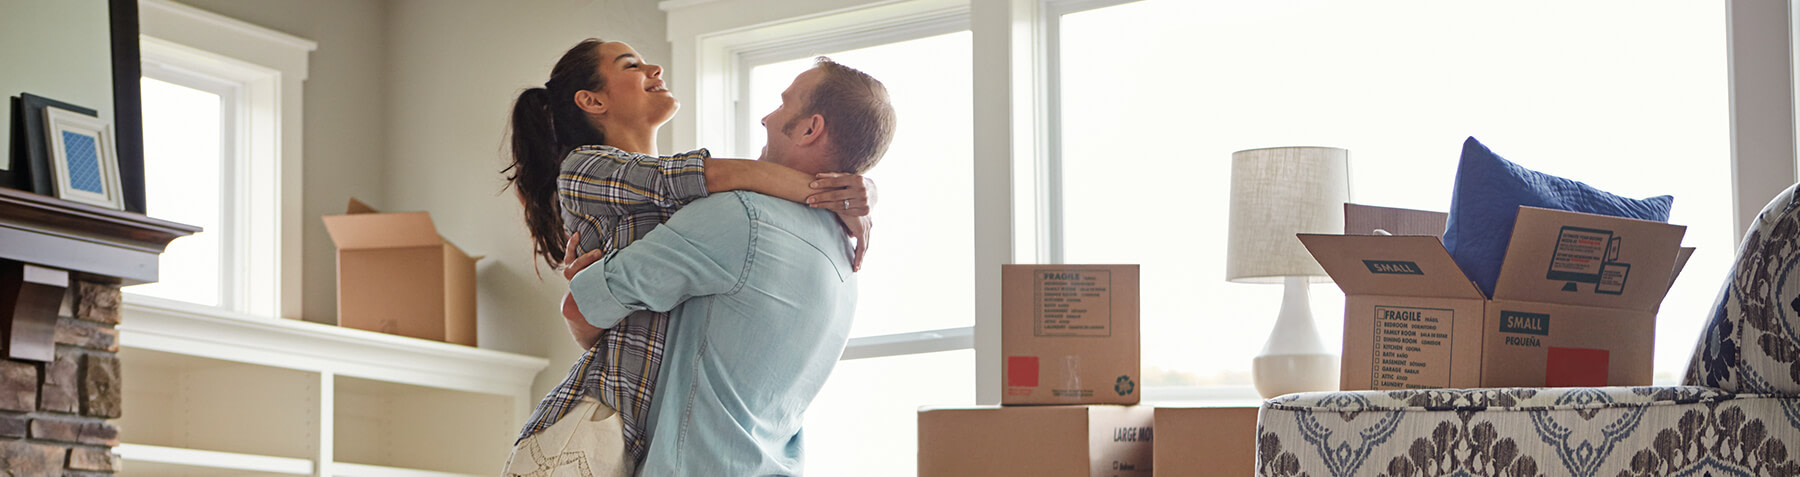 New home conveyancing